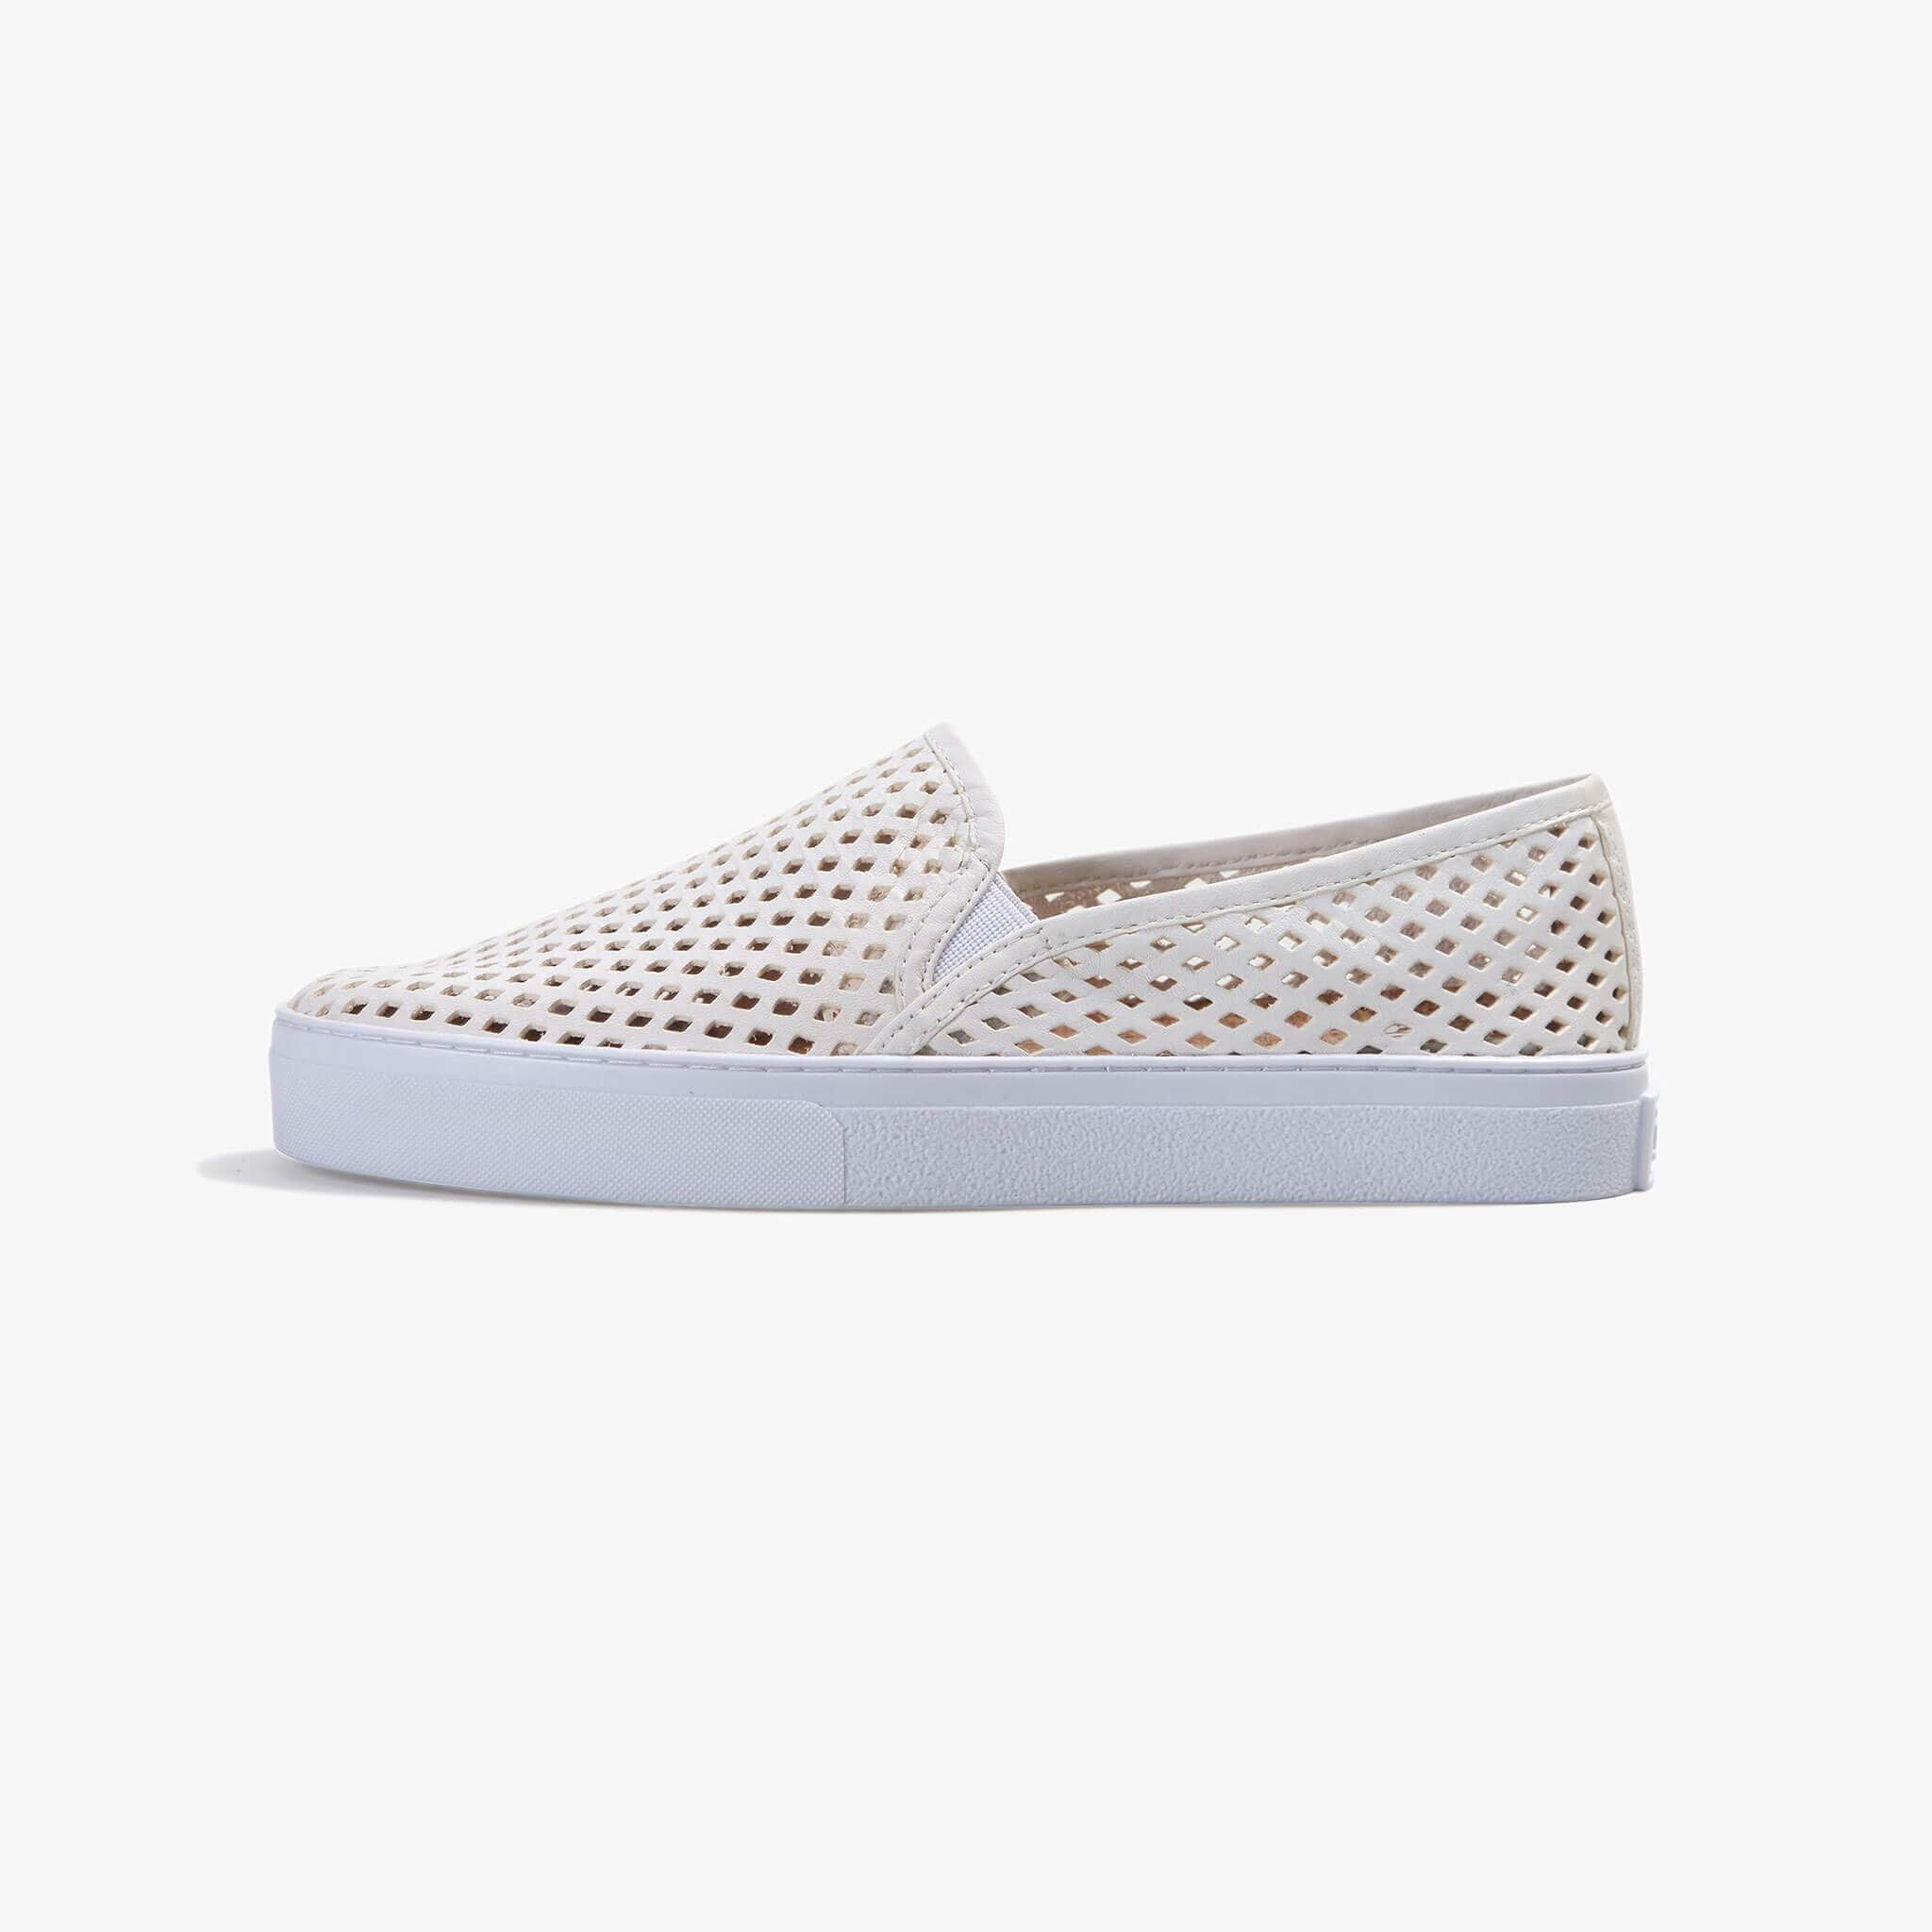 JIbs Classic Soft White Slip On Sneaker-Shoe Shoe Side